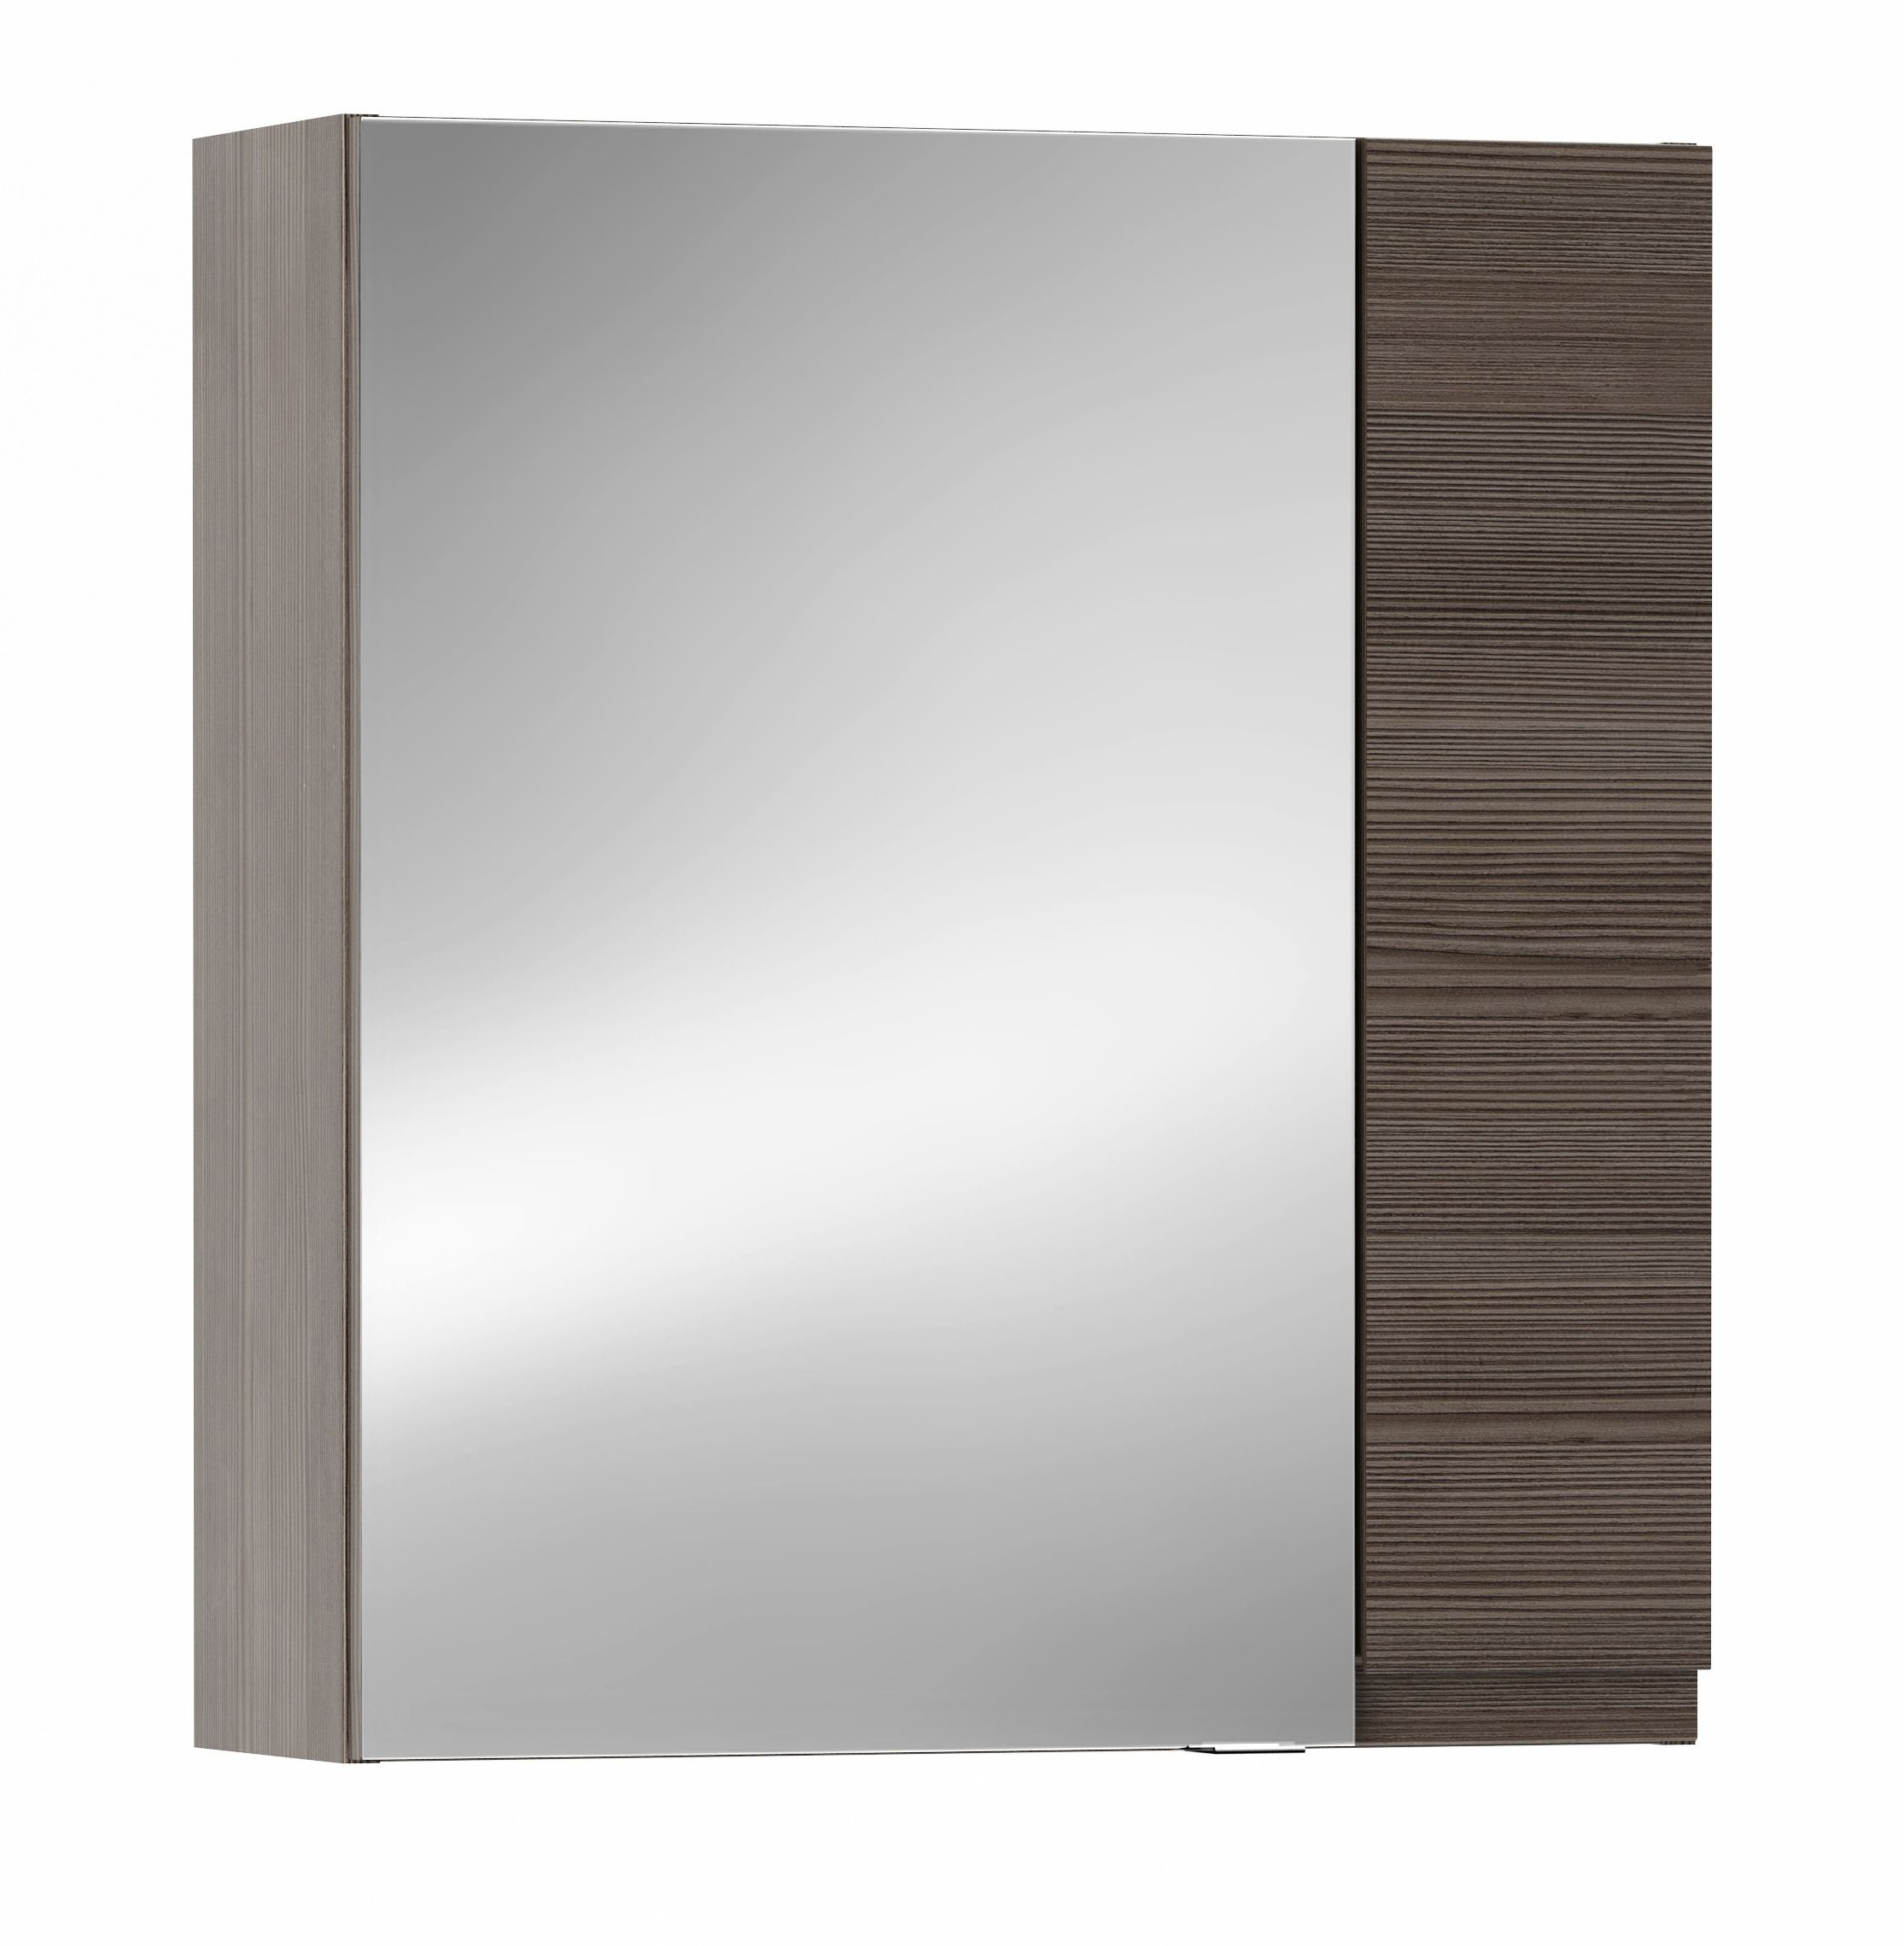 Cooke Lewis Paolo Bodega Grey Mirror Cabinet